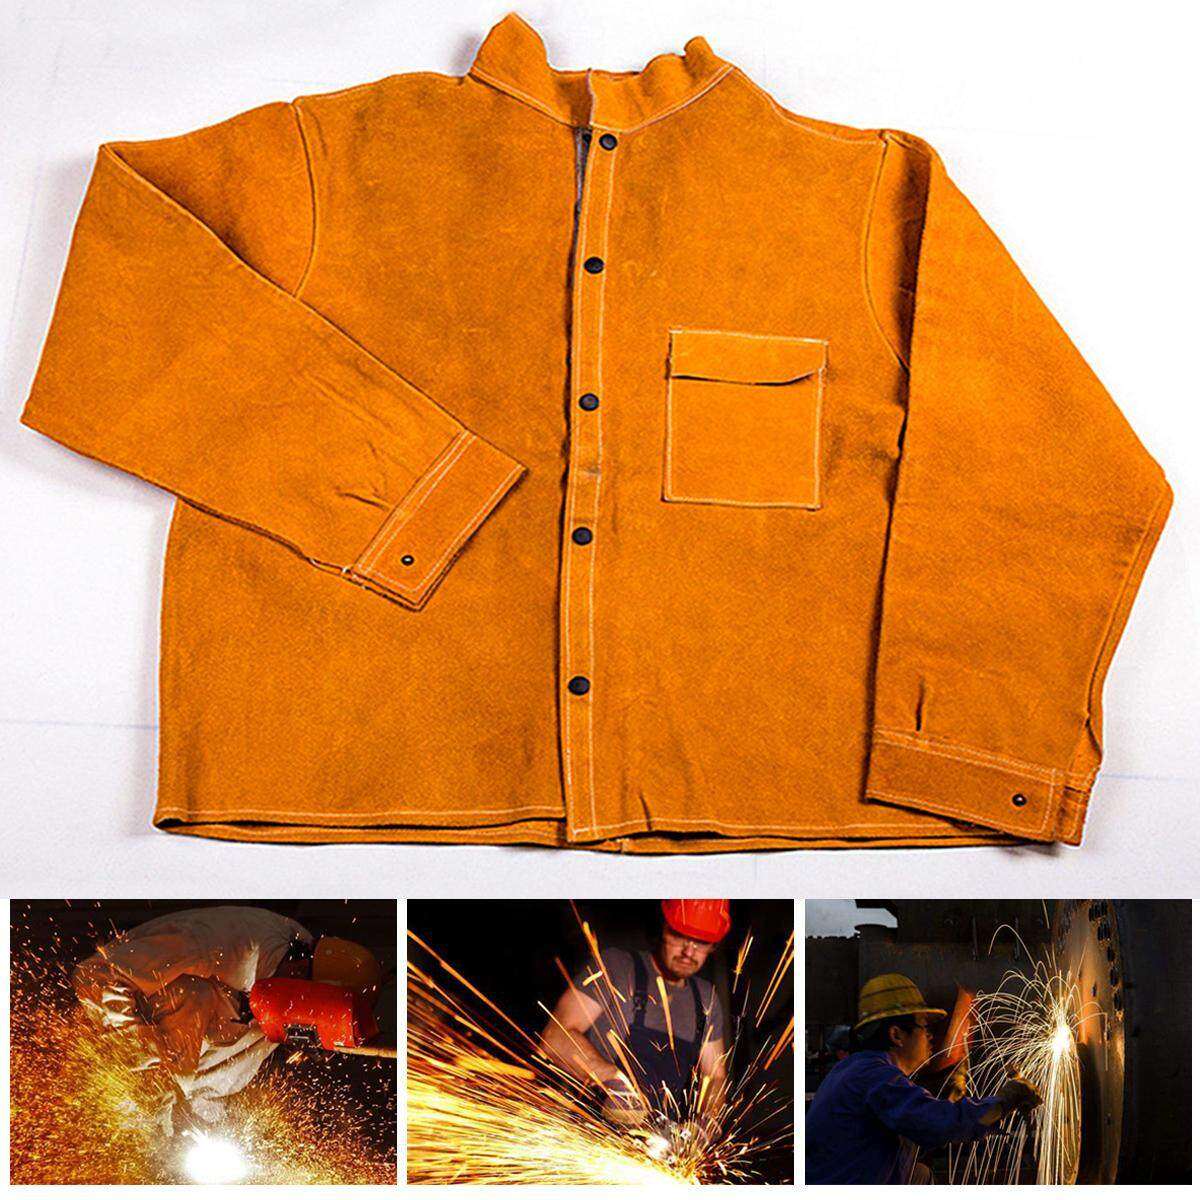 Welders Jacket Cow Leather Apron Protective Clothing Welding Safety Apparel New XL Size